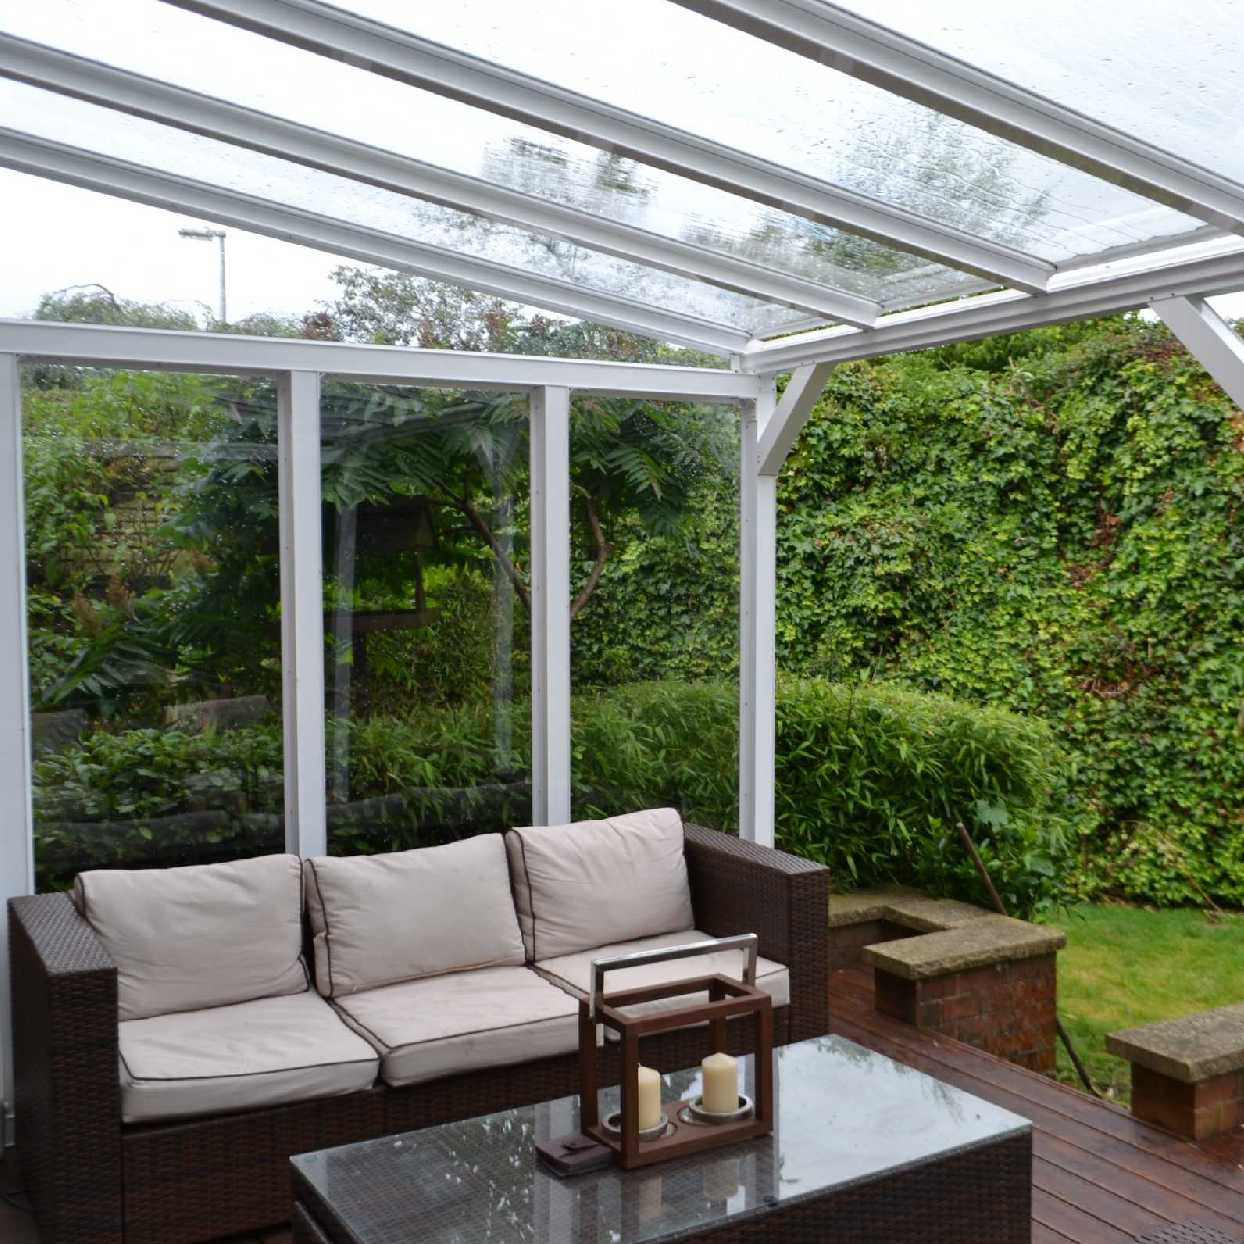 Great selection of Omega Smart White Lean-To Canopy with 16mm Polycarbonate Glazing - 7.0m (W) x 4.0m (P), (4) Supporting Posts